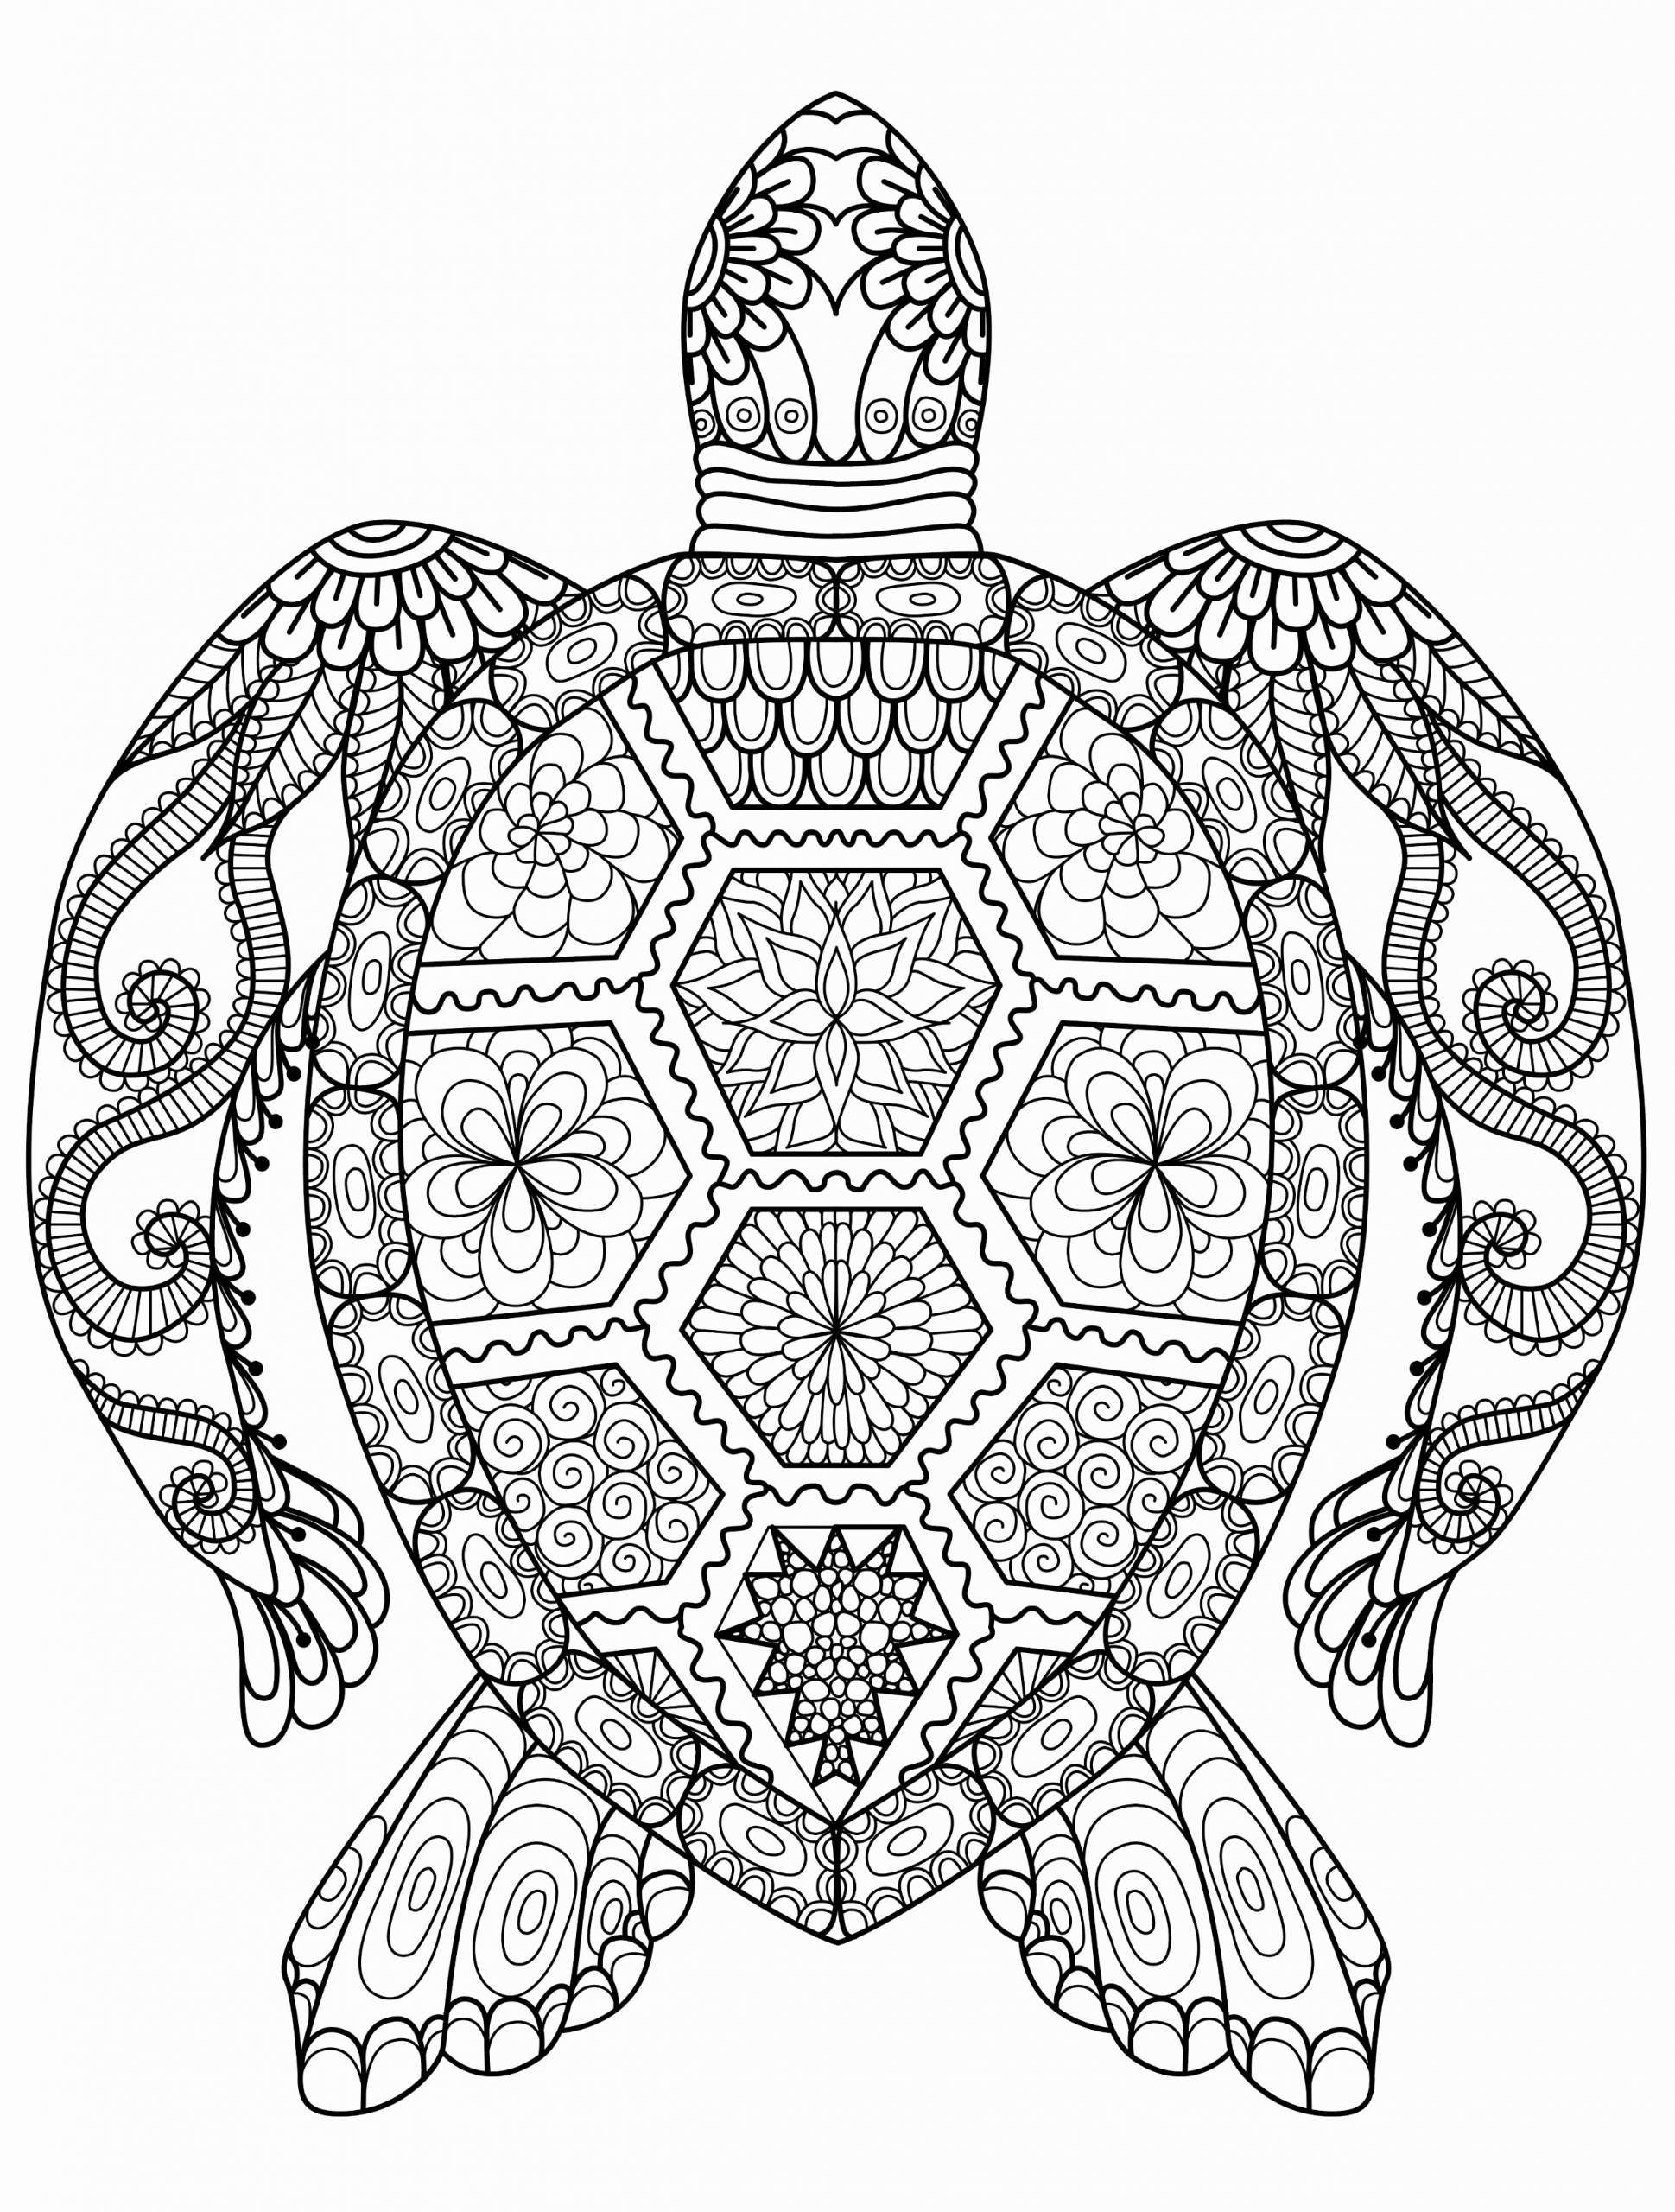 Hard Coloring Pages Of Animals For Kids In 2020 Turtle Coloring Pages Cool Coloring Pages Free Coloring Pages